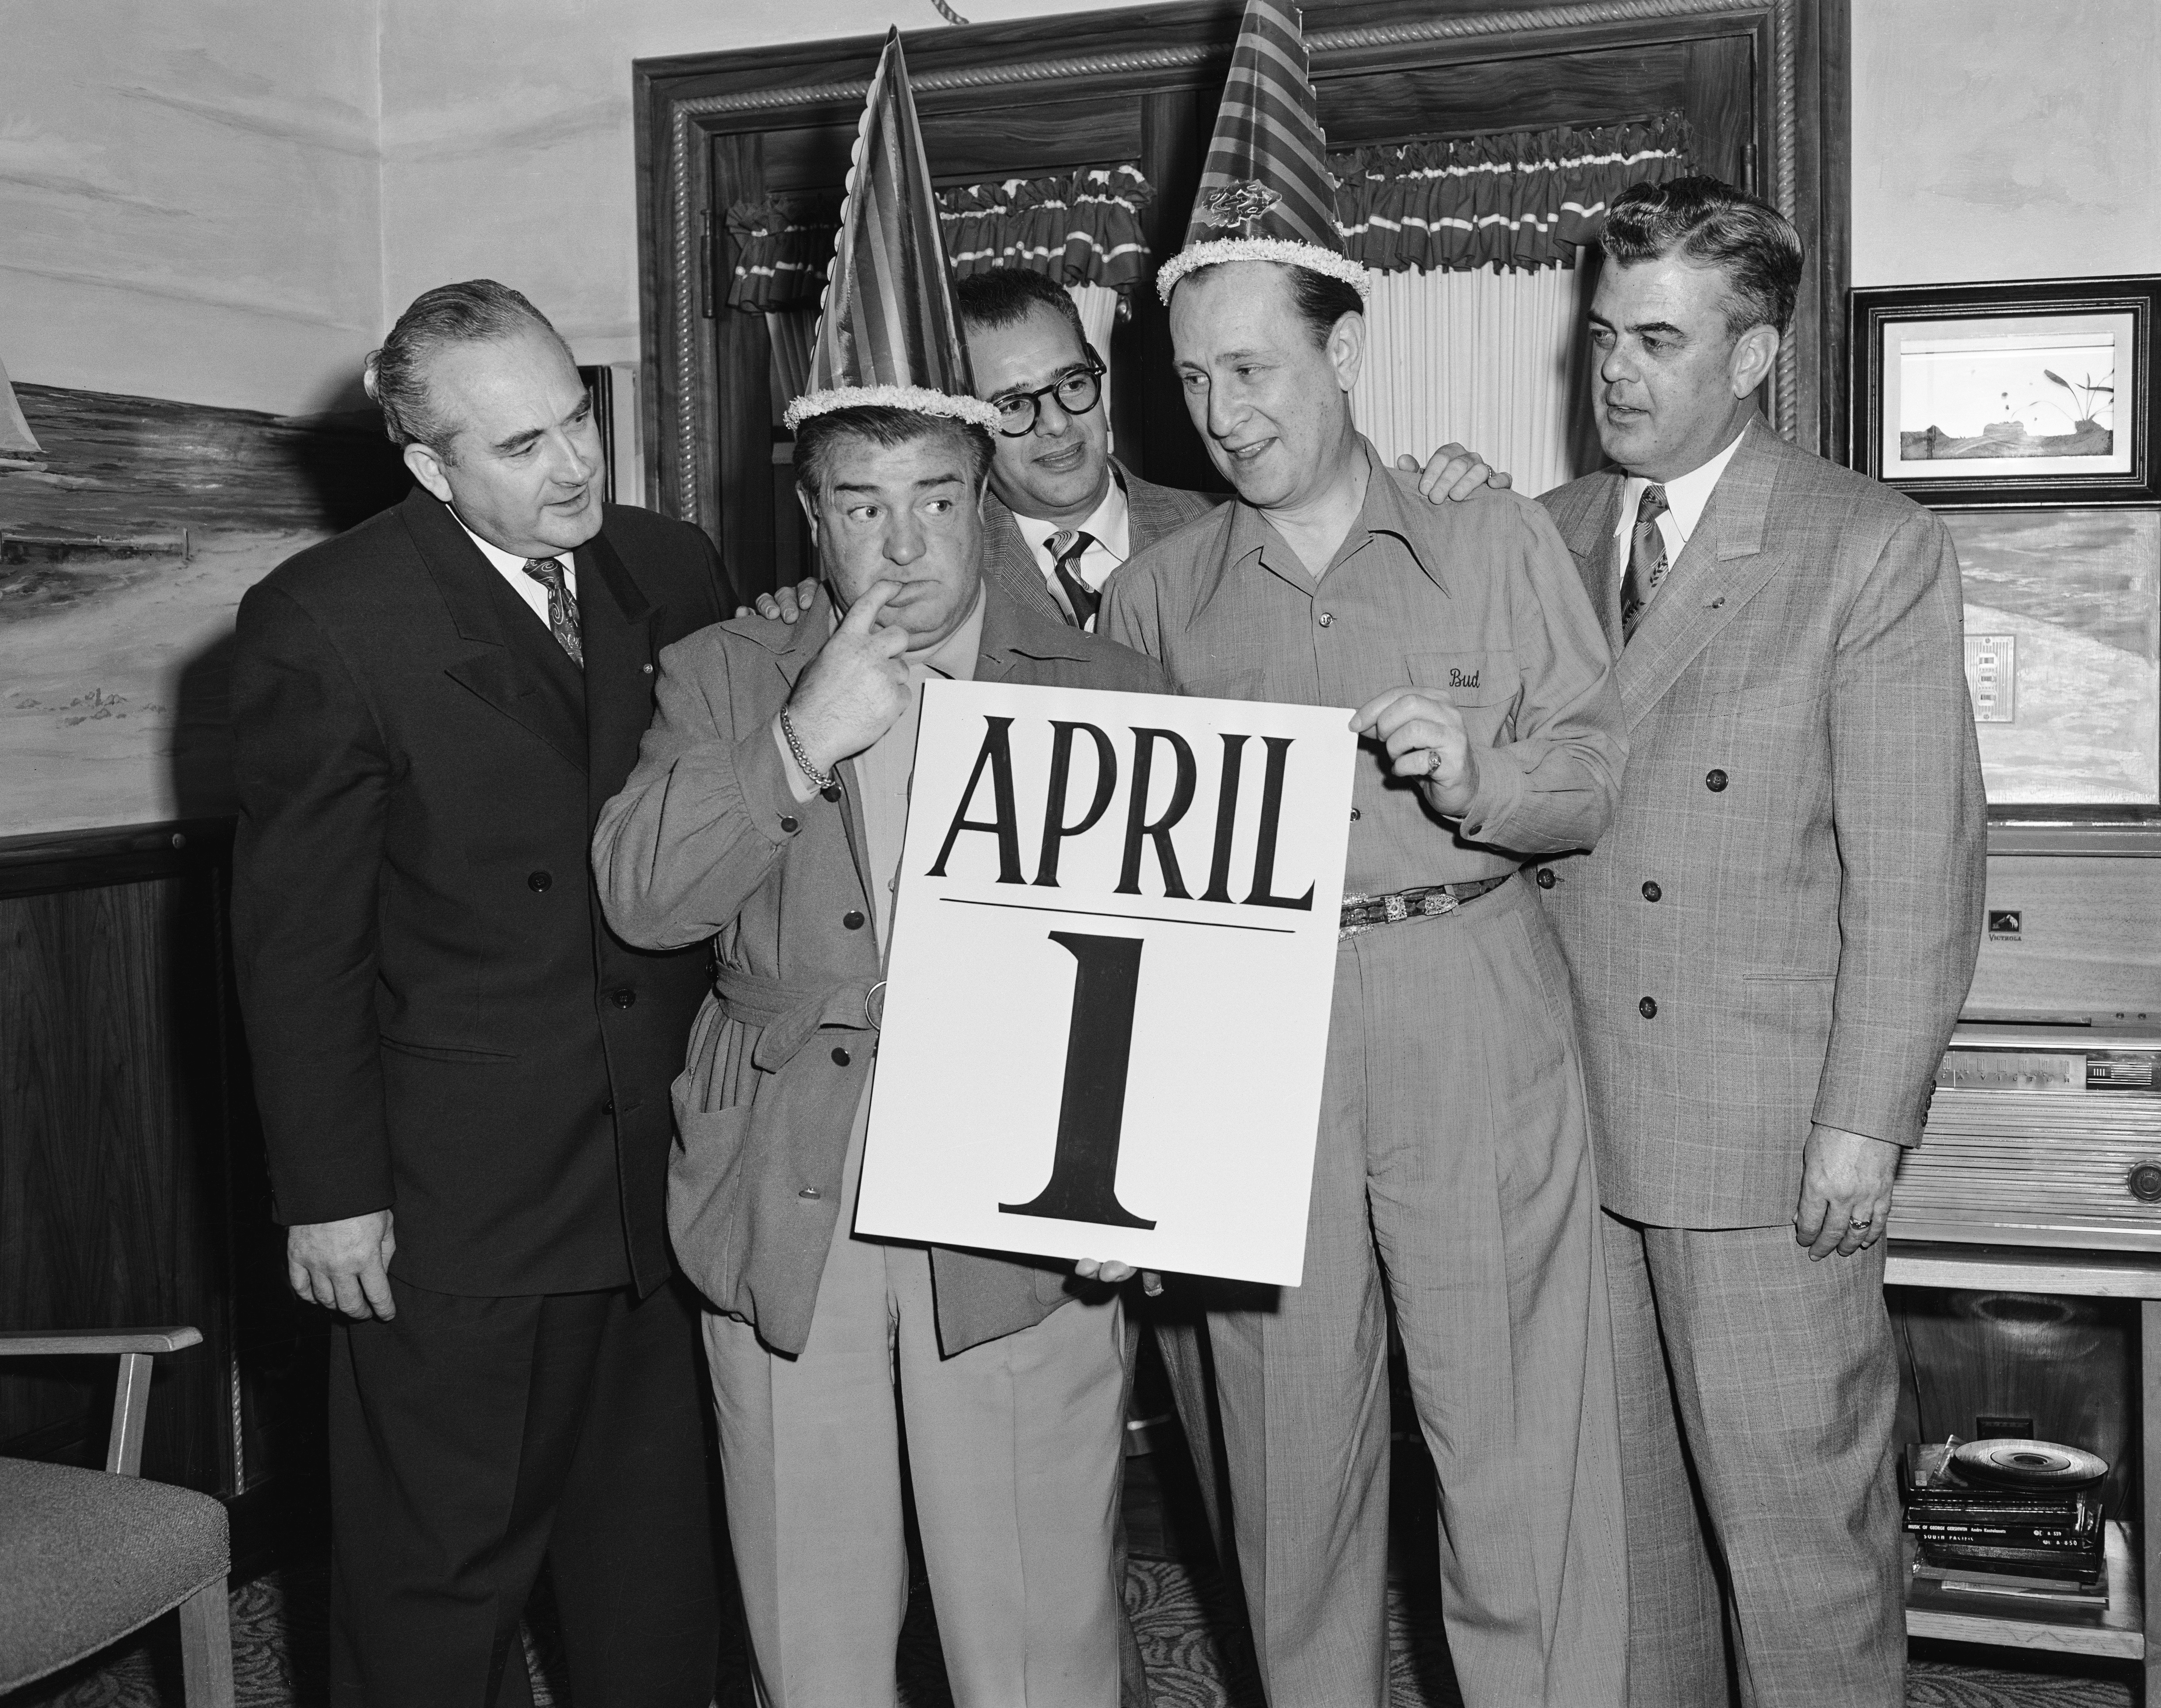 Bud Abbott and Lou Costello on April Fool's Day, early 1950s